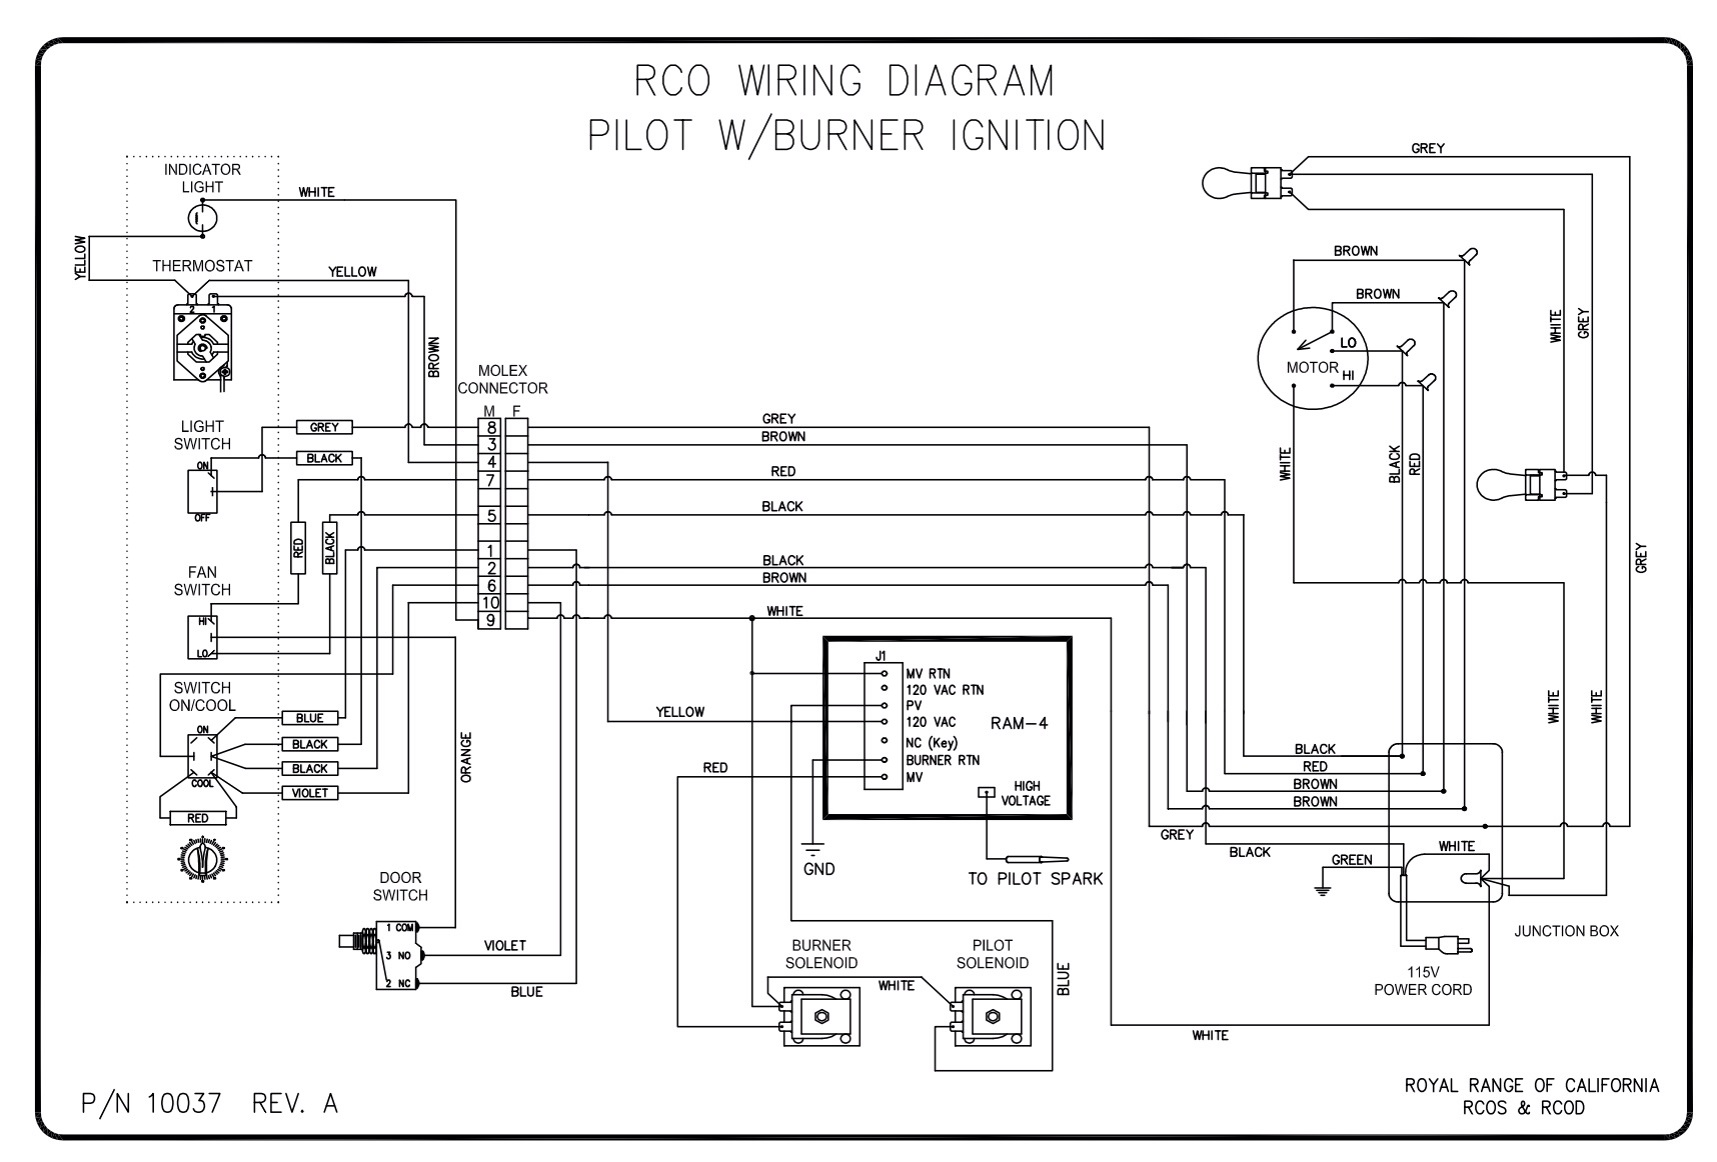 Oven Wiring Red White Black Solutions Hard Zsi Along With Bosch Microwave Ovens Diagrams Royal Range Of California